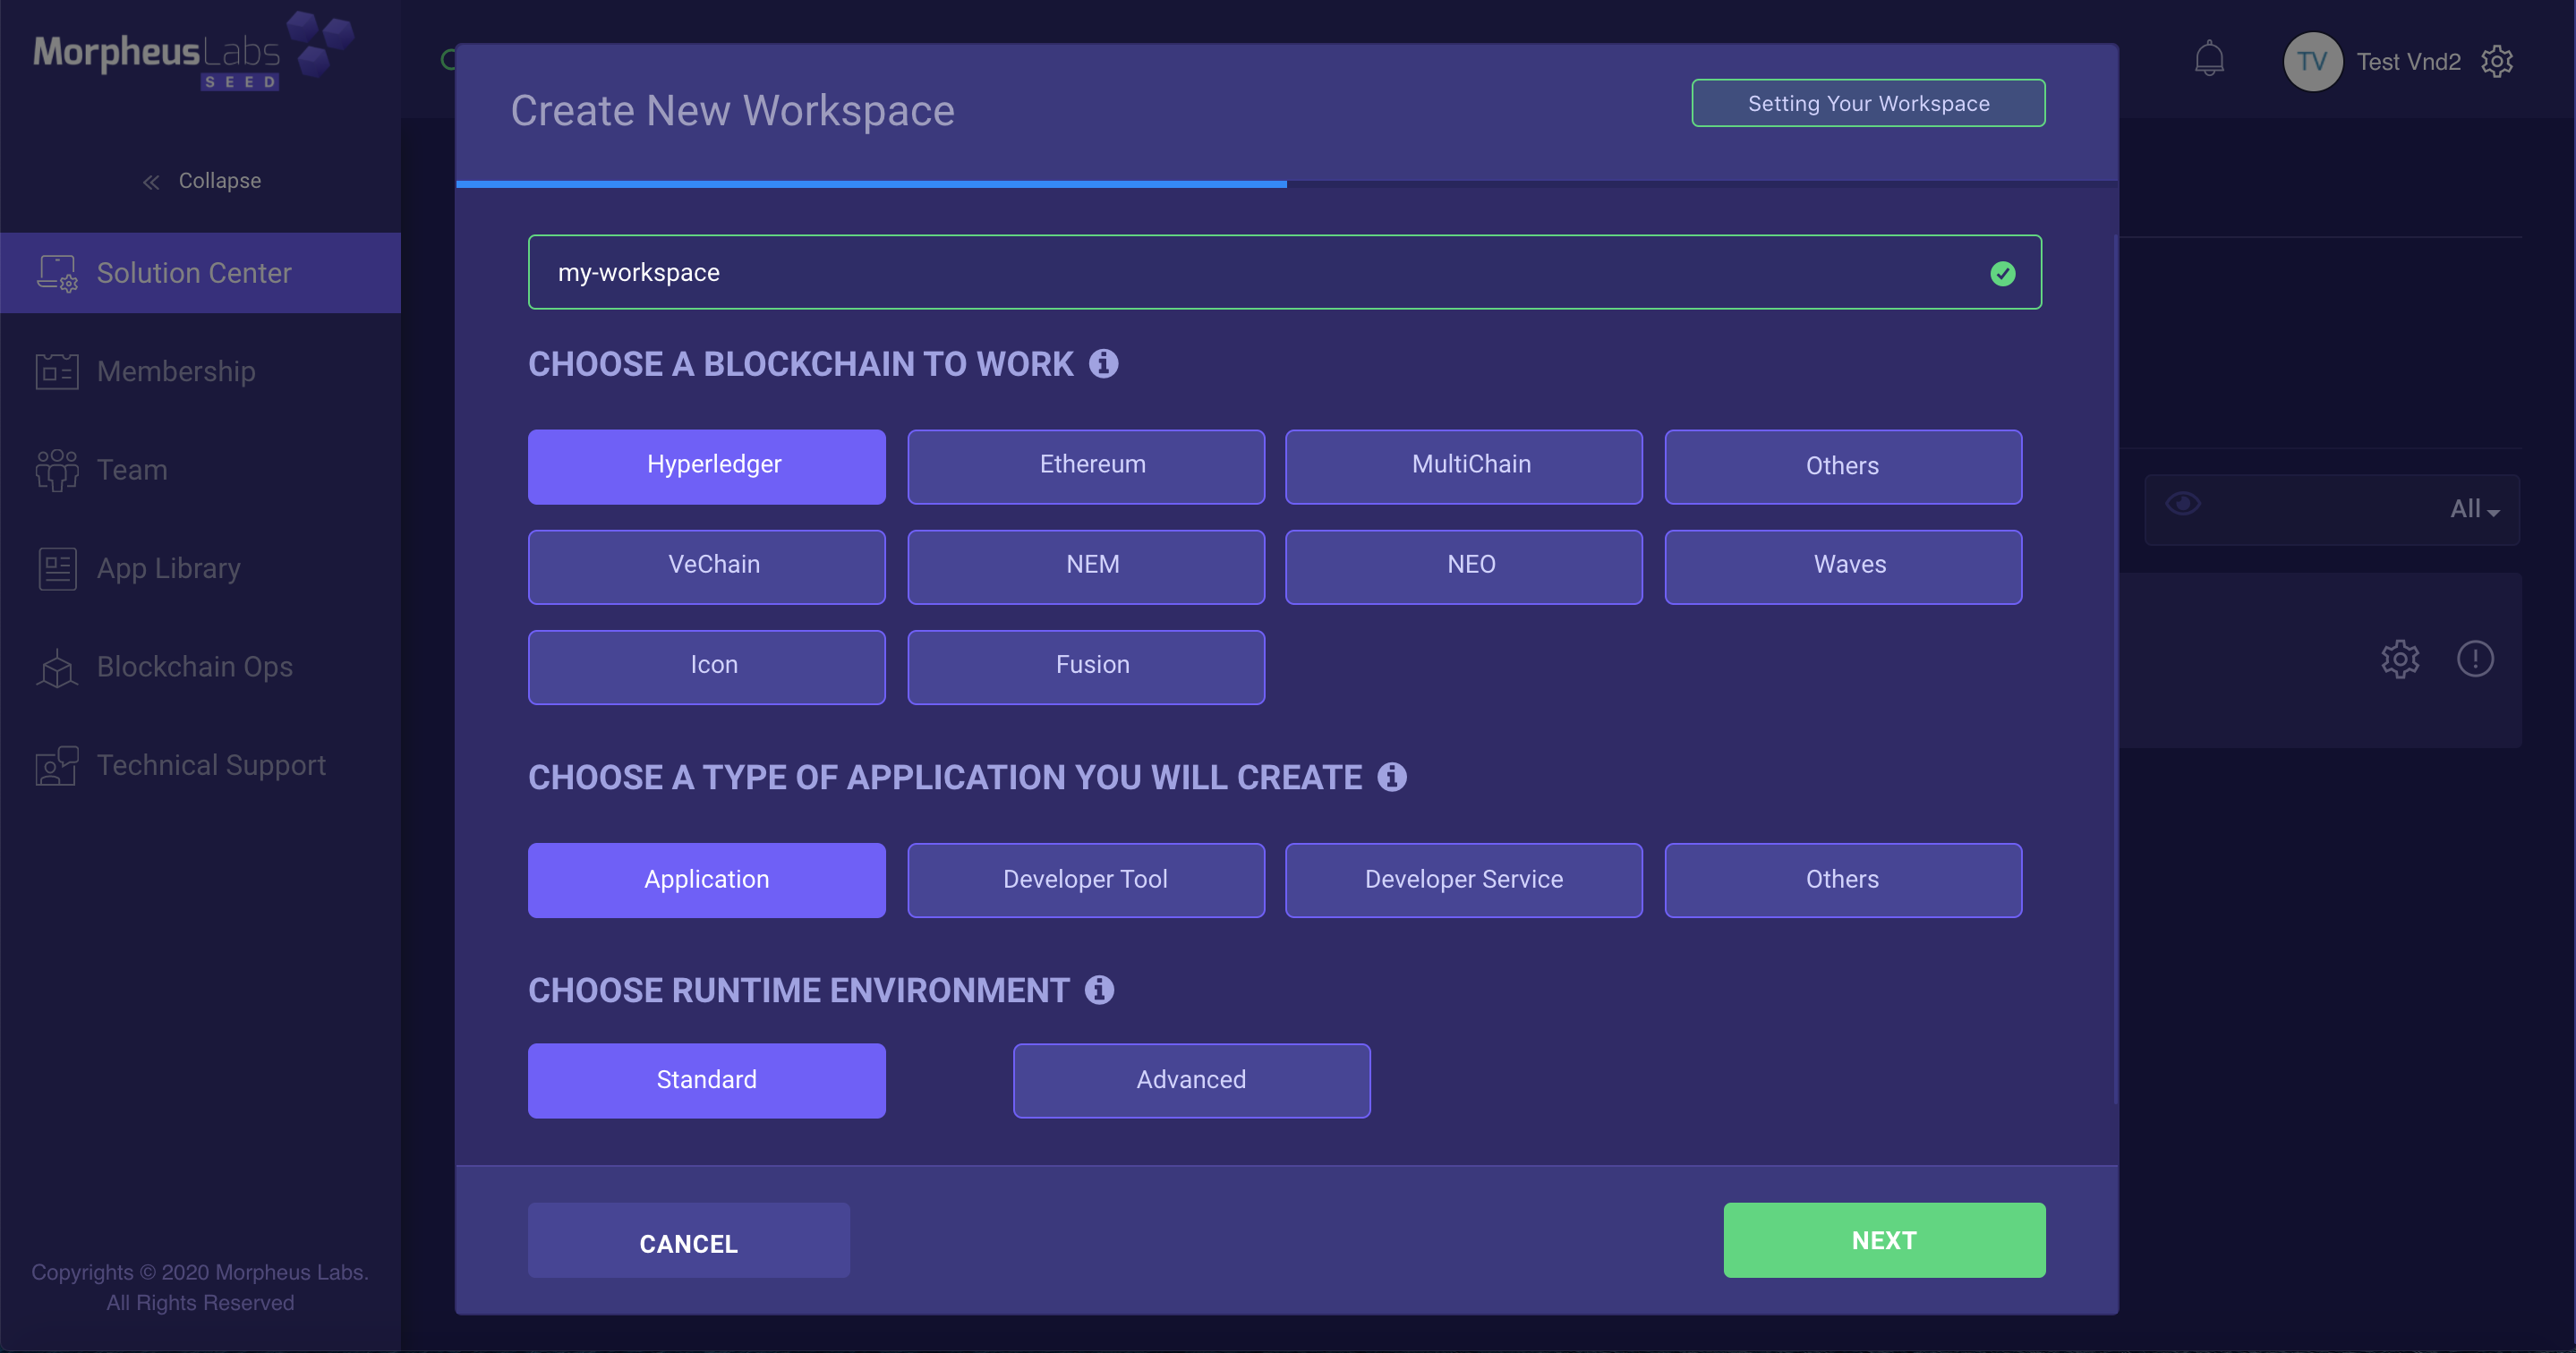 Select the options for the workspace